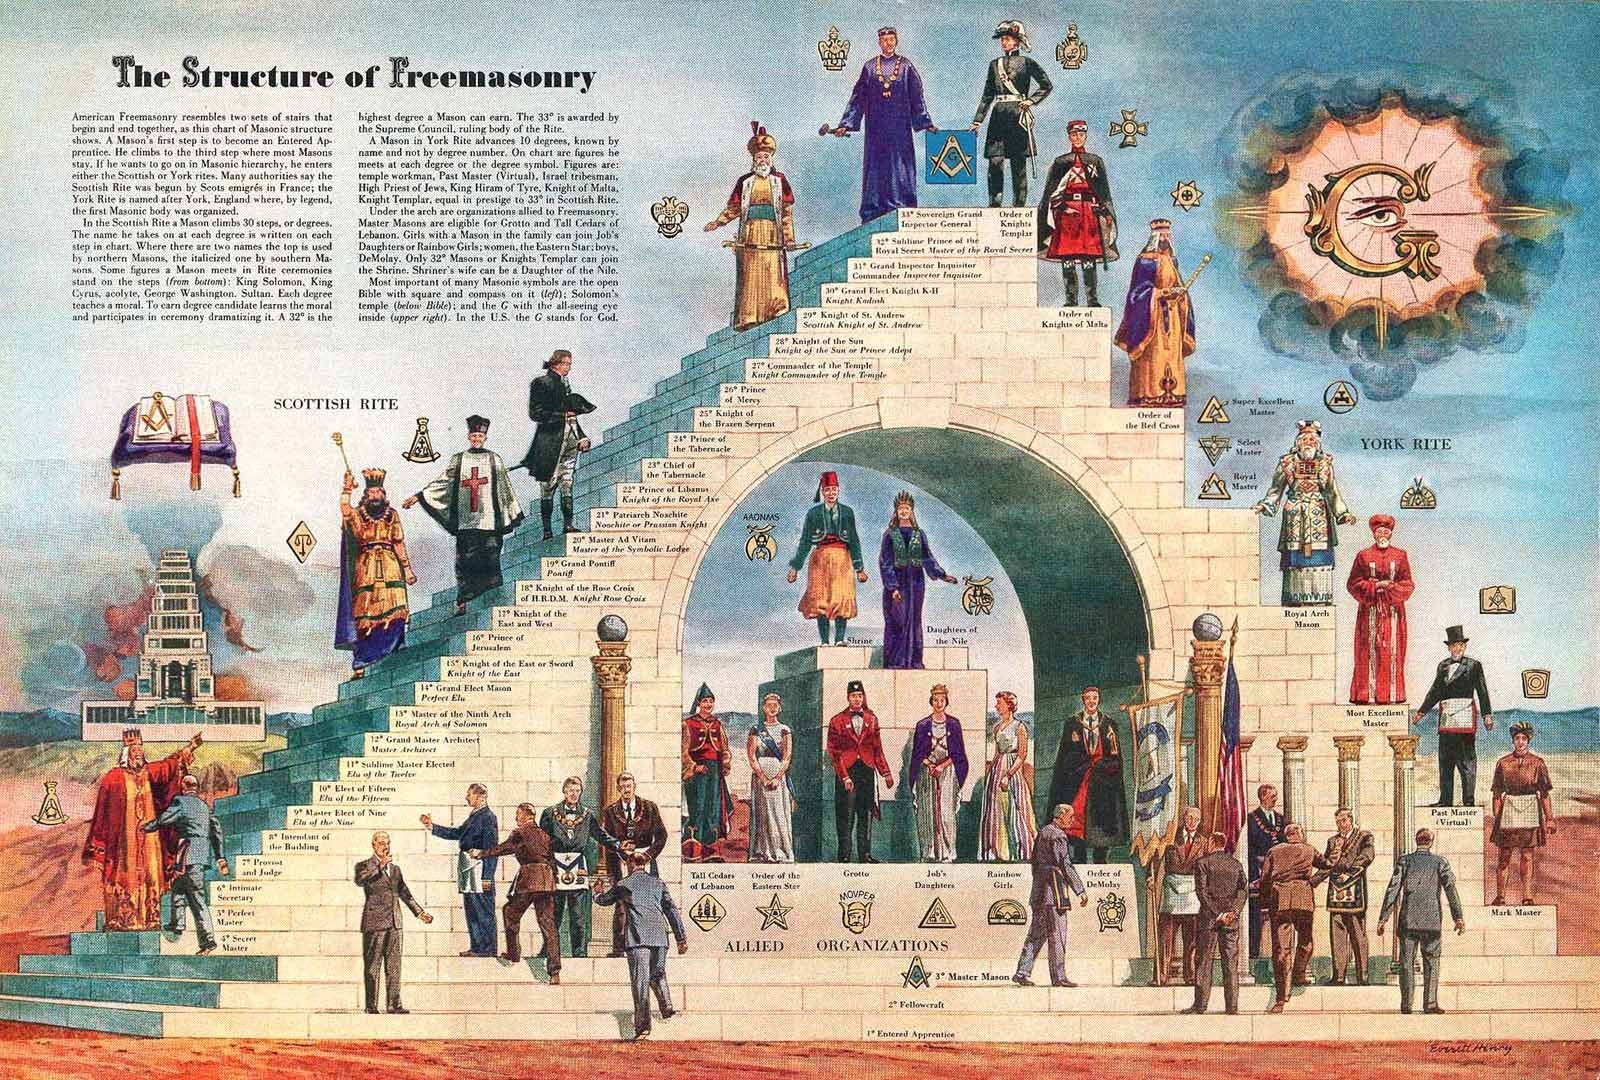 Satan angelbabe43s blog the structure of freemasonry chart detailing scottish and york rite degrees fandeluxe Images